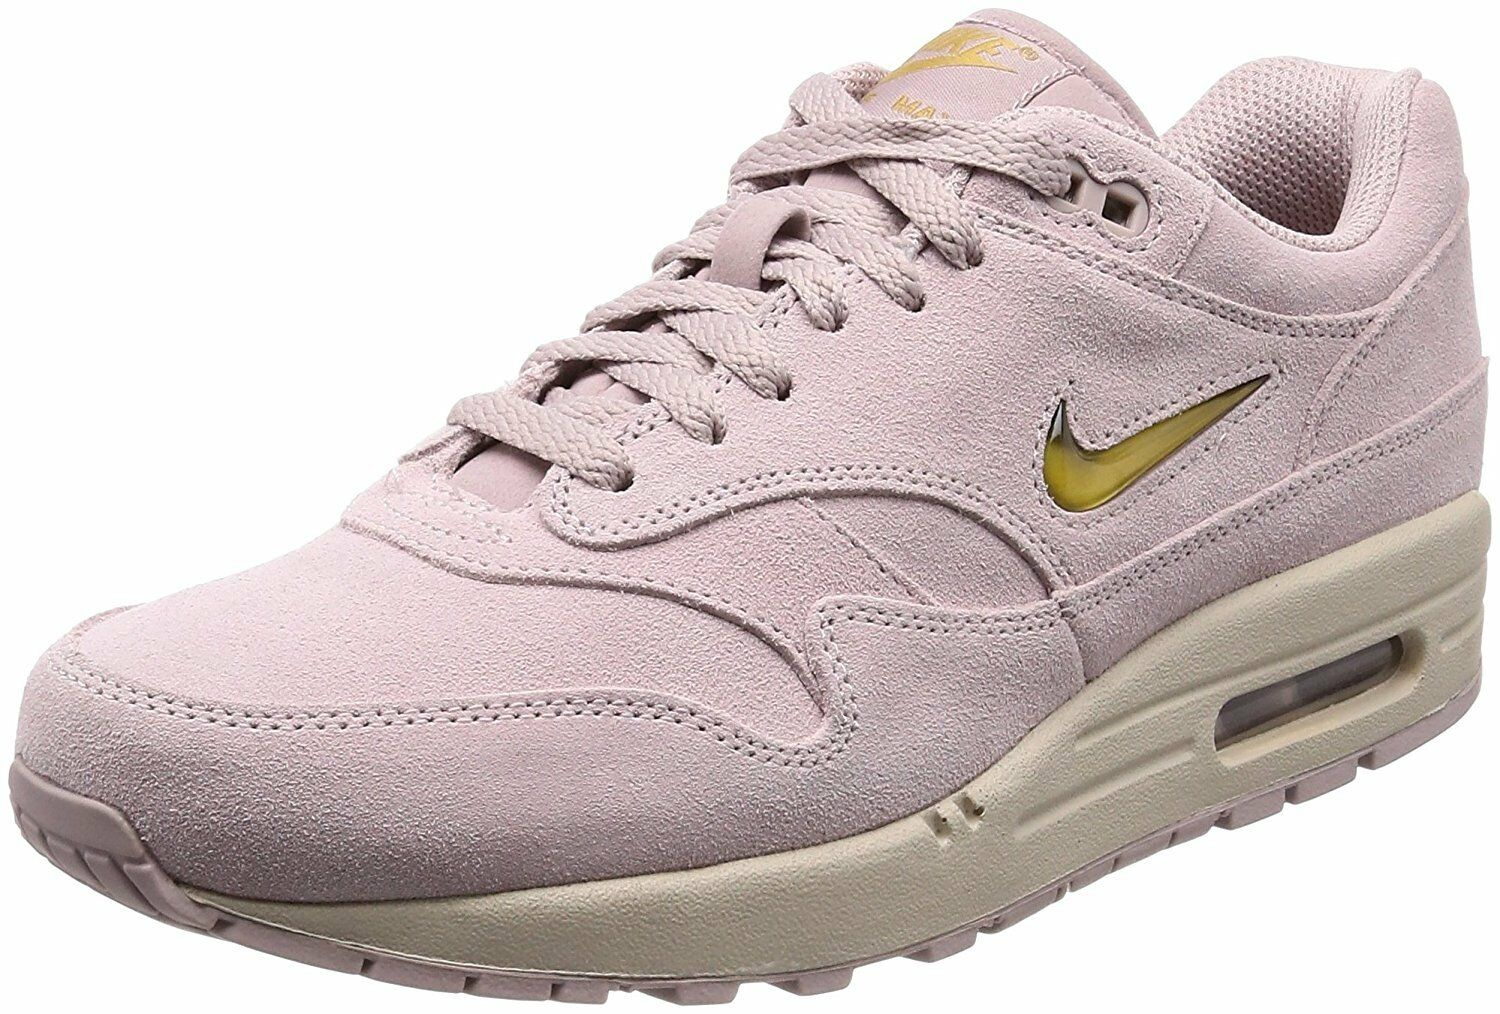 Nike Air Max 1 Premium SC Particle Rose/Metallic Gold Price reduction The latest discount shoes for men and women